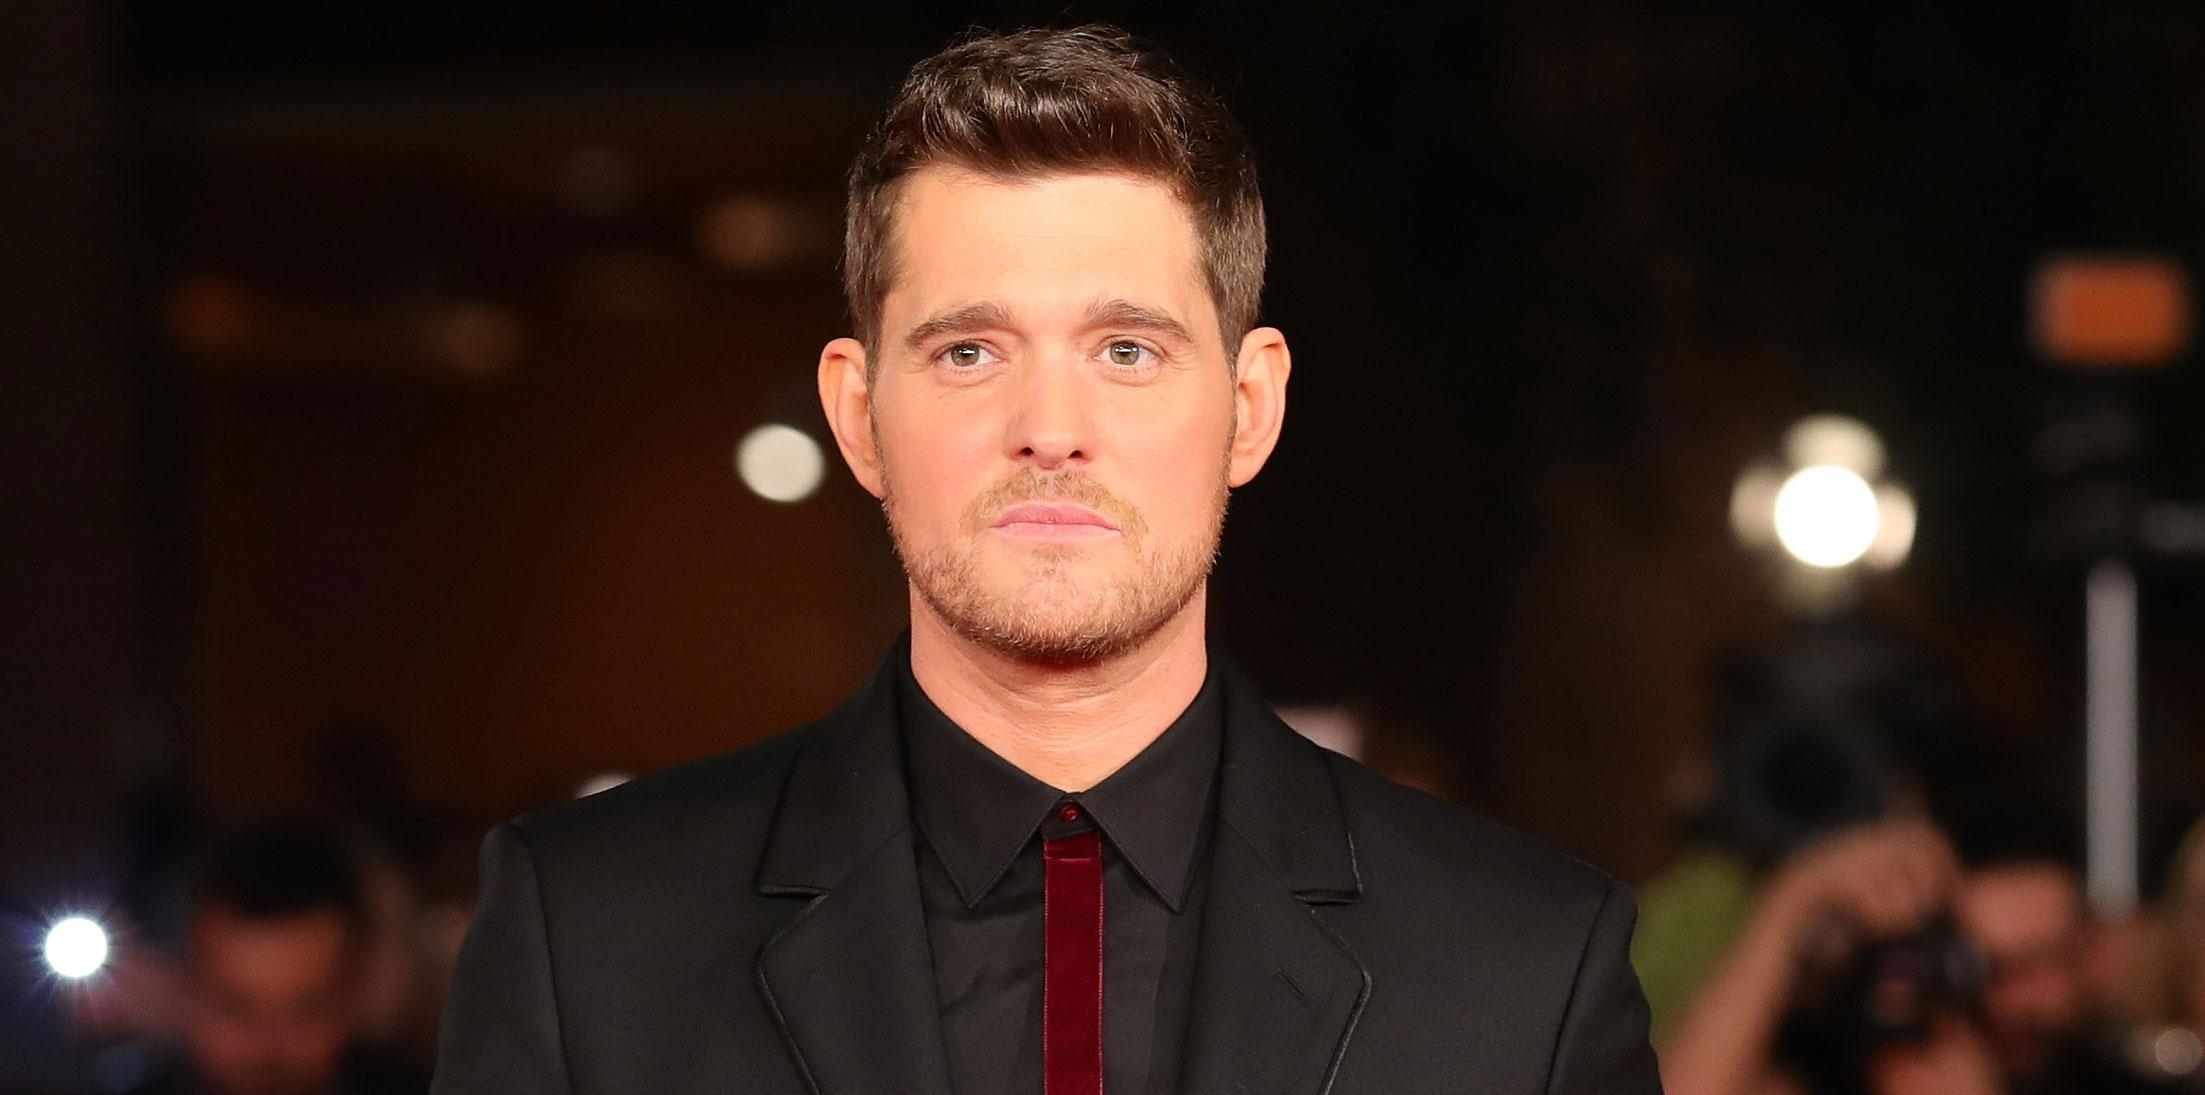 Michael Buble Son Cancer First Appearance Long